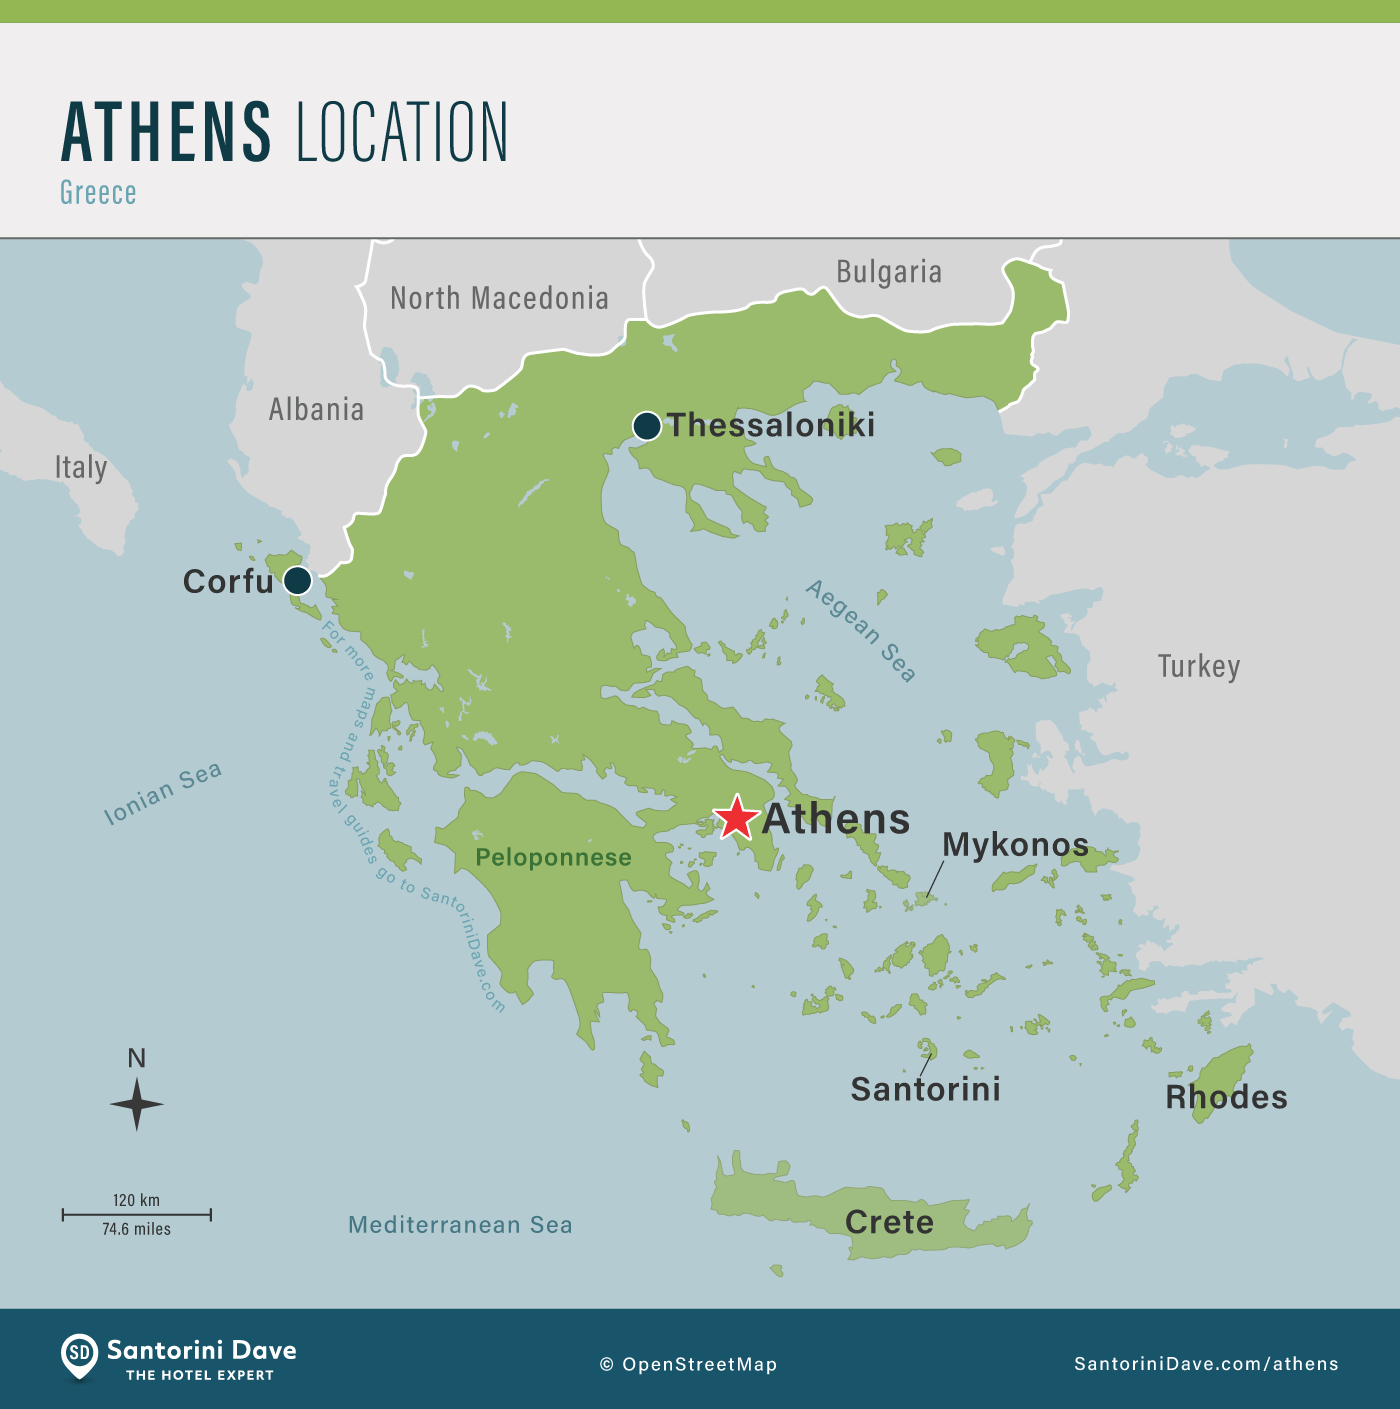 Map showing the location of Athens within Greece